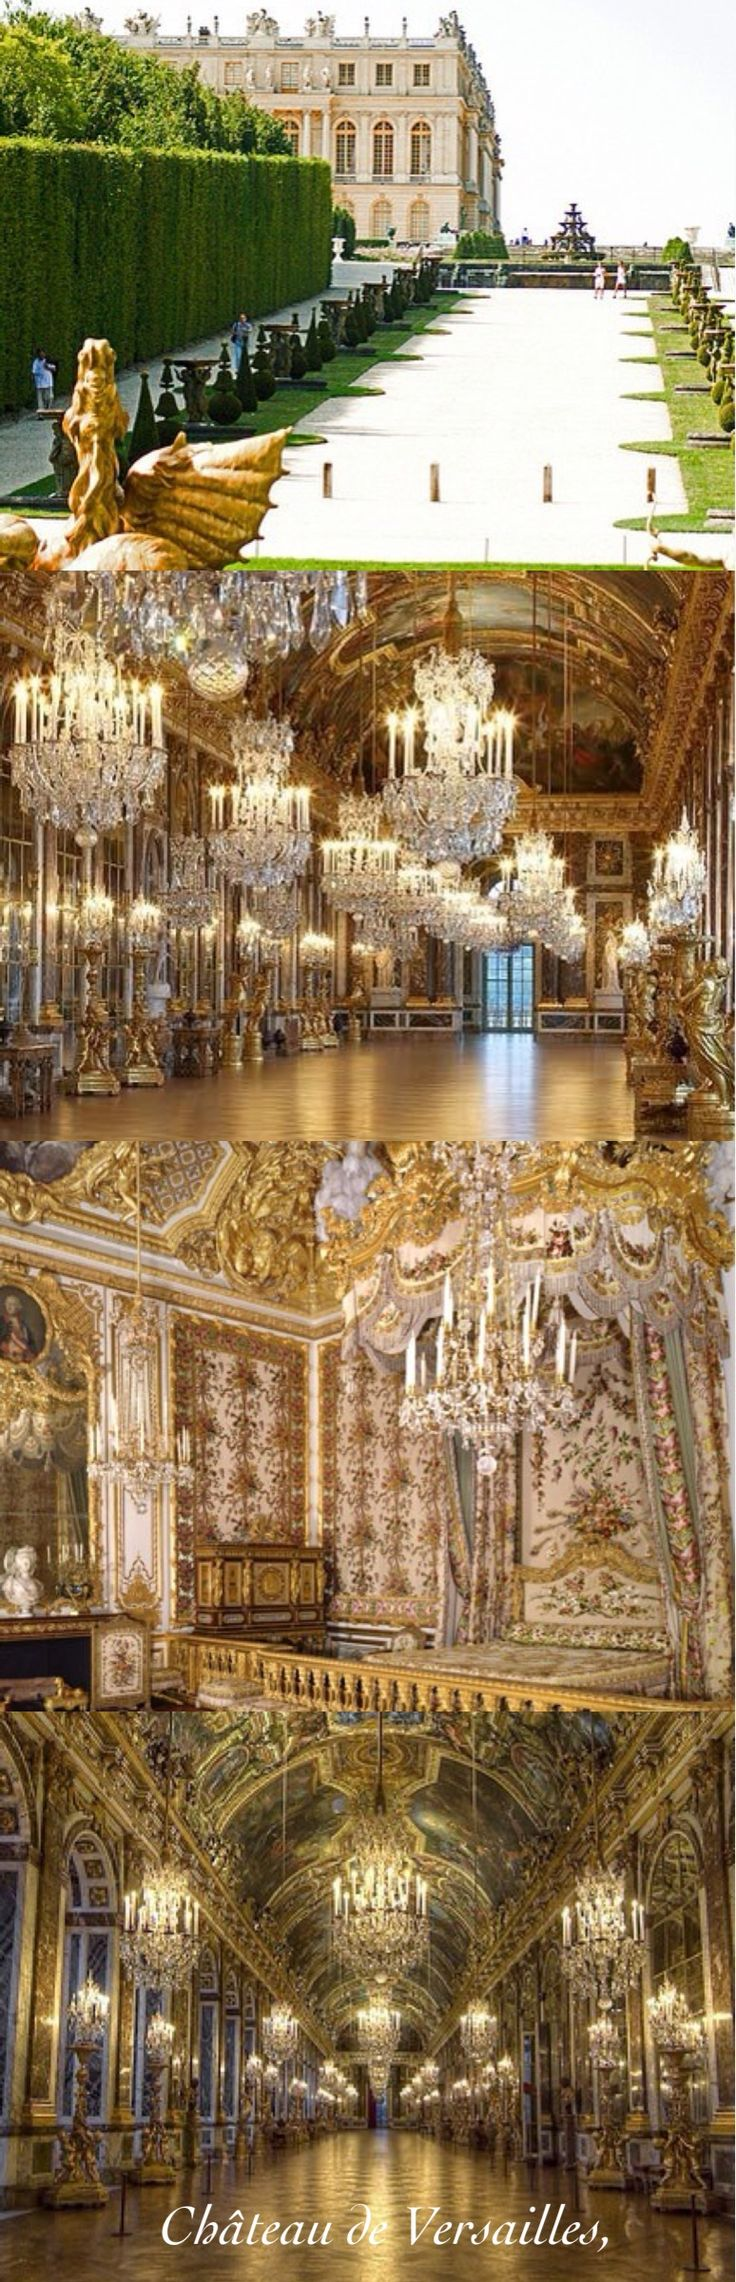 The Palace of Versailles, or simply Versailles, is a royal château in Versailles in the Île-de-France region of France. In French it is the Château de Versailles.